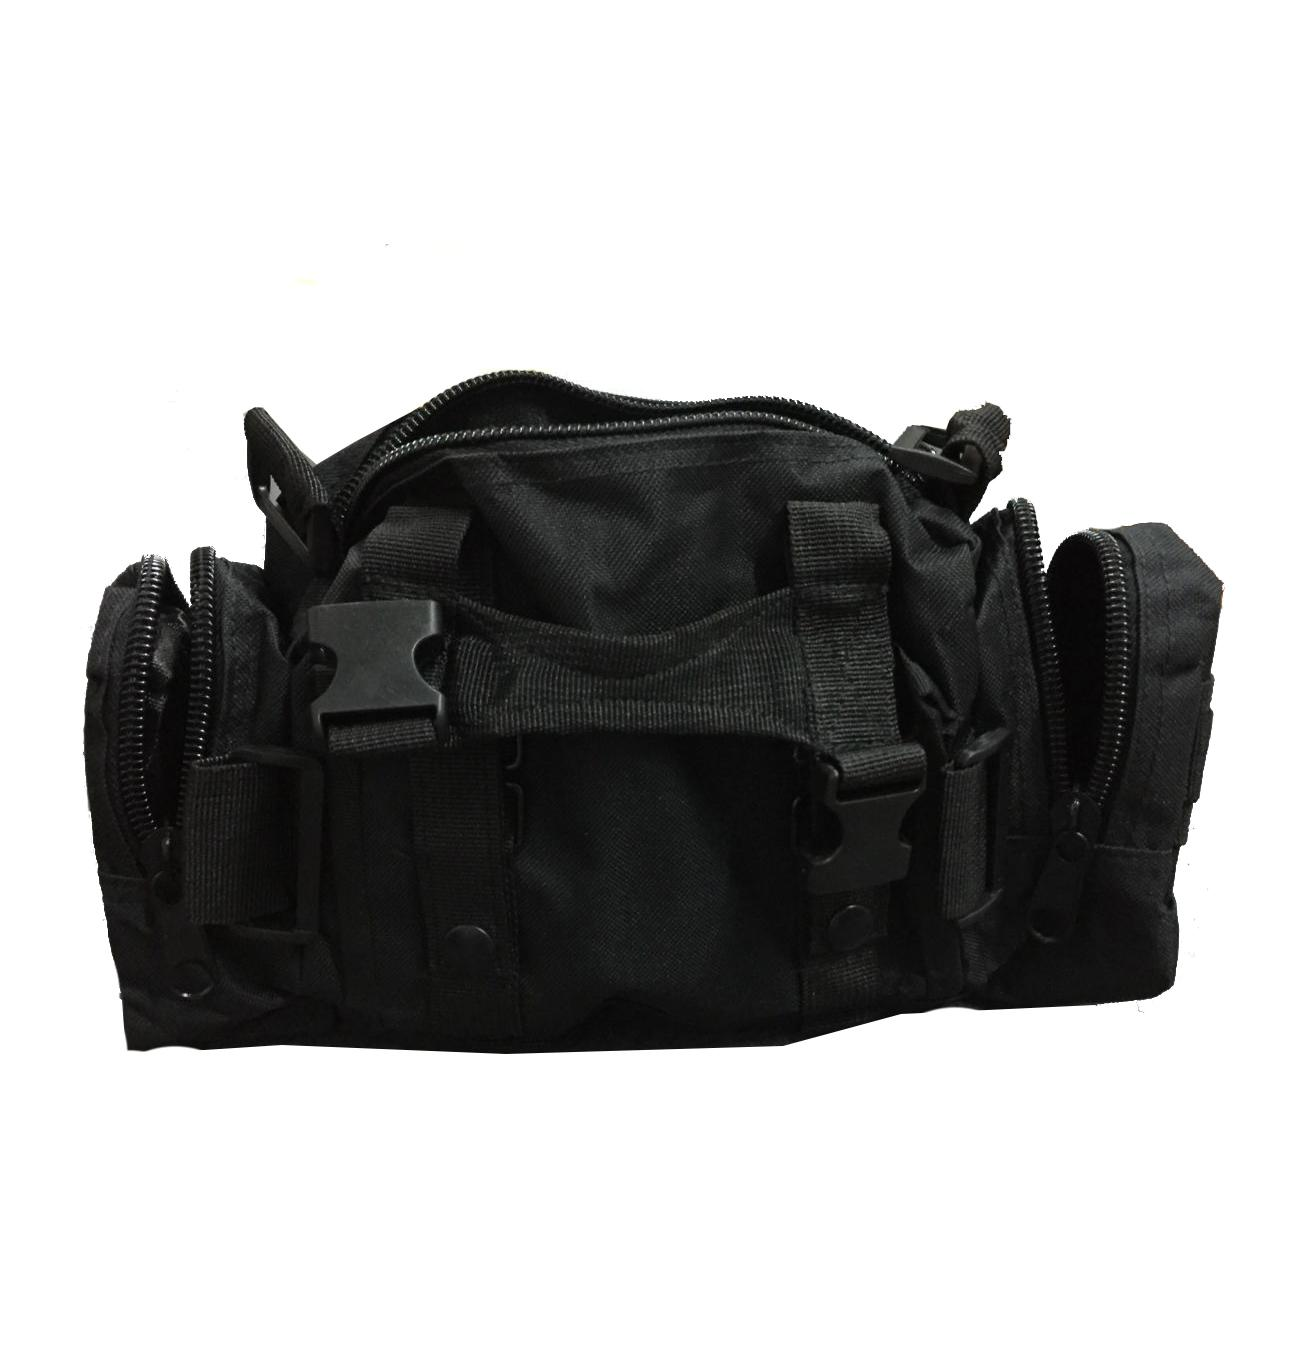 New Outdoor Tactical Backpack Luggage Duffle Carry On Travel Camping Hiking Shoulder Bags